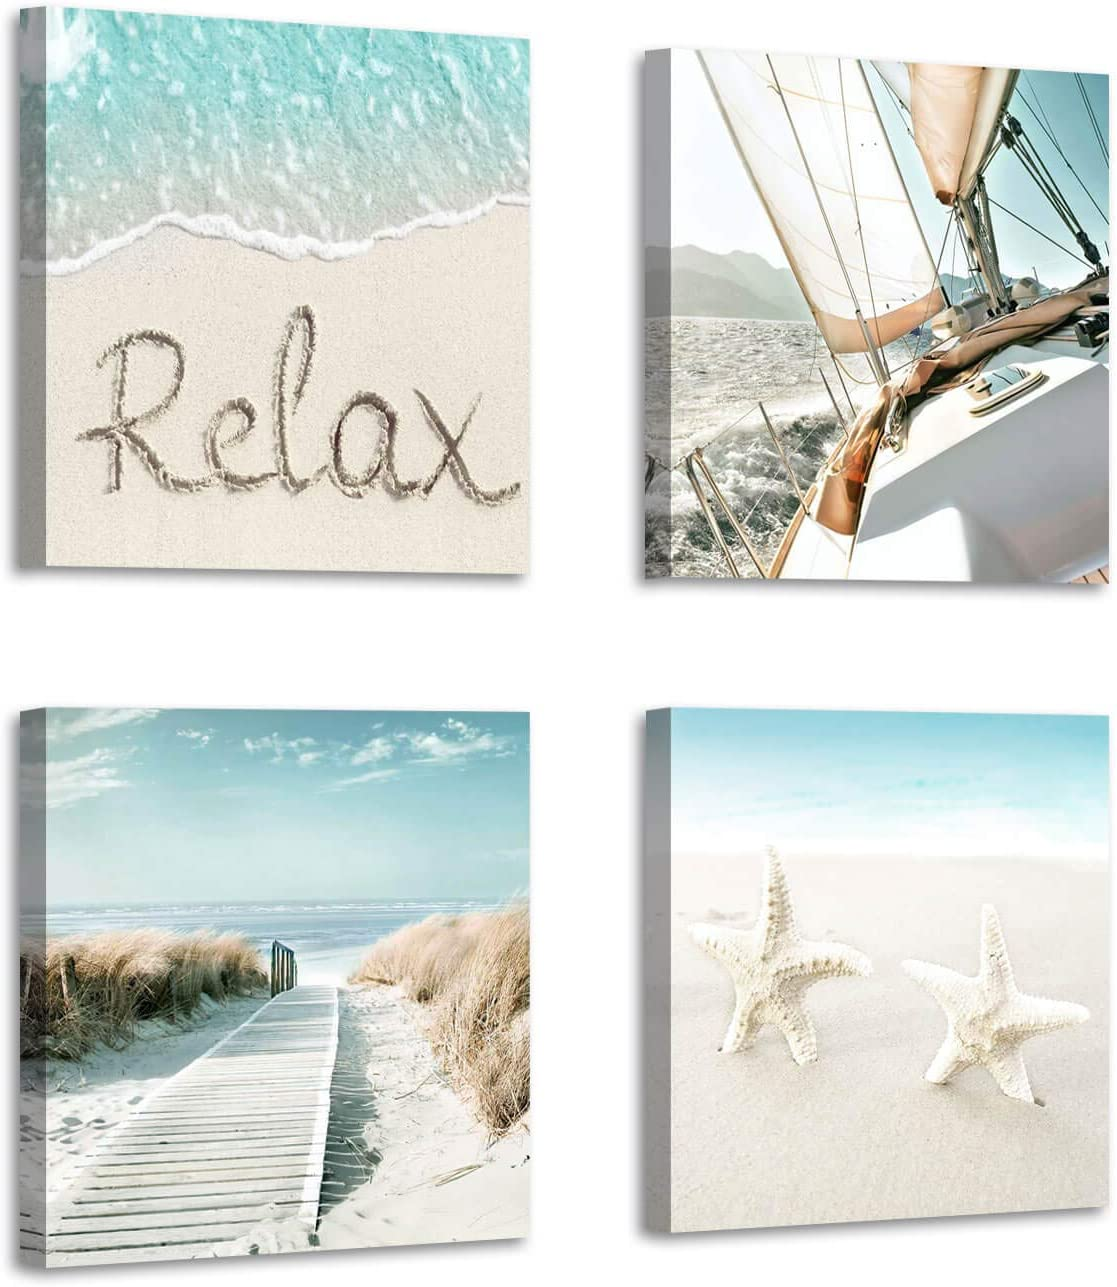 "Beach Theme Canvas Wall Art: Sailboat Sailing & Starfish & Pathway to Coastal Picture Photographic Artwork for Living Room (12"" x 12'' x 4 Panels)"